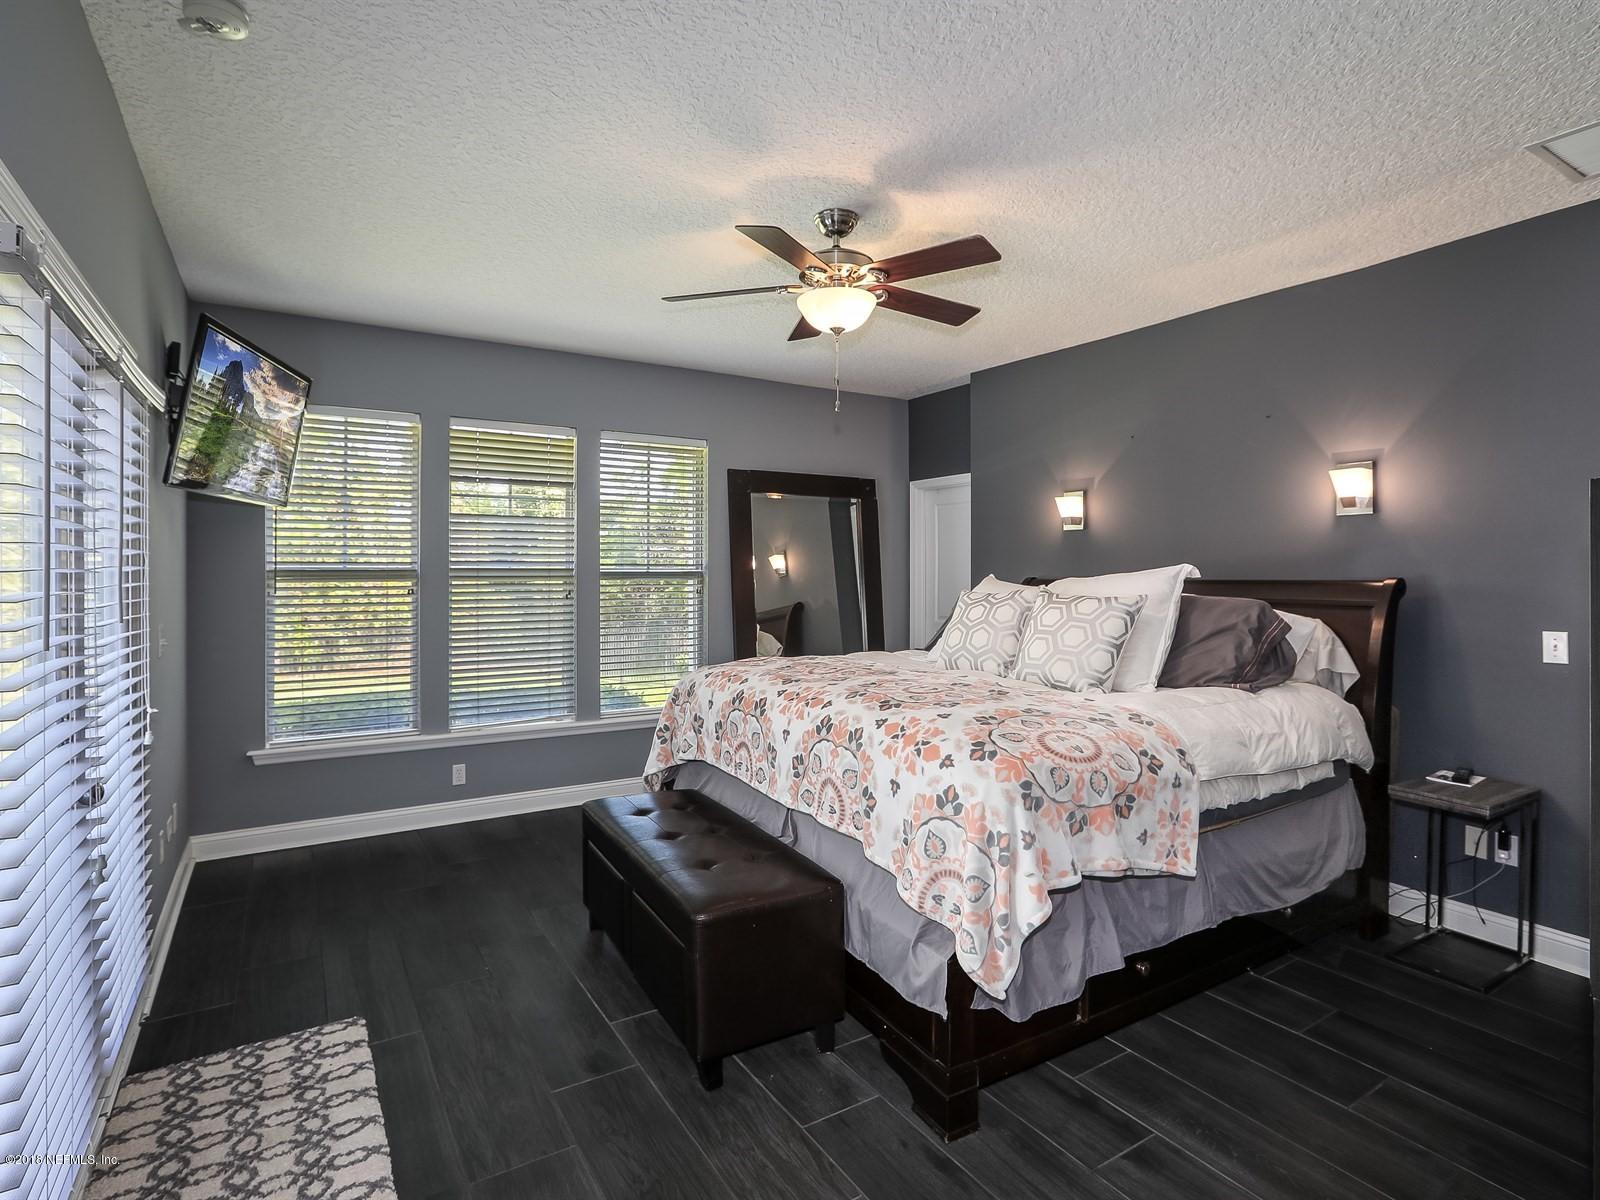 447 ST JOHNS GOLF, ST AUGUSTINE, FLORIDA 32092, 5 Bedrooms Bedrooms, ,4 BathroomsBathrooms,Residential - single family,For sale,ST JOHNS GOLF,957788